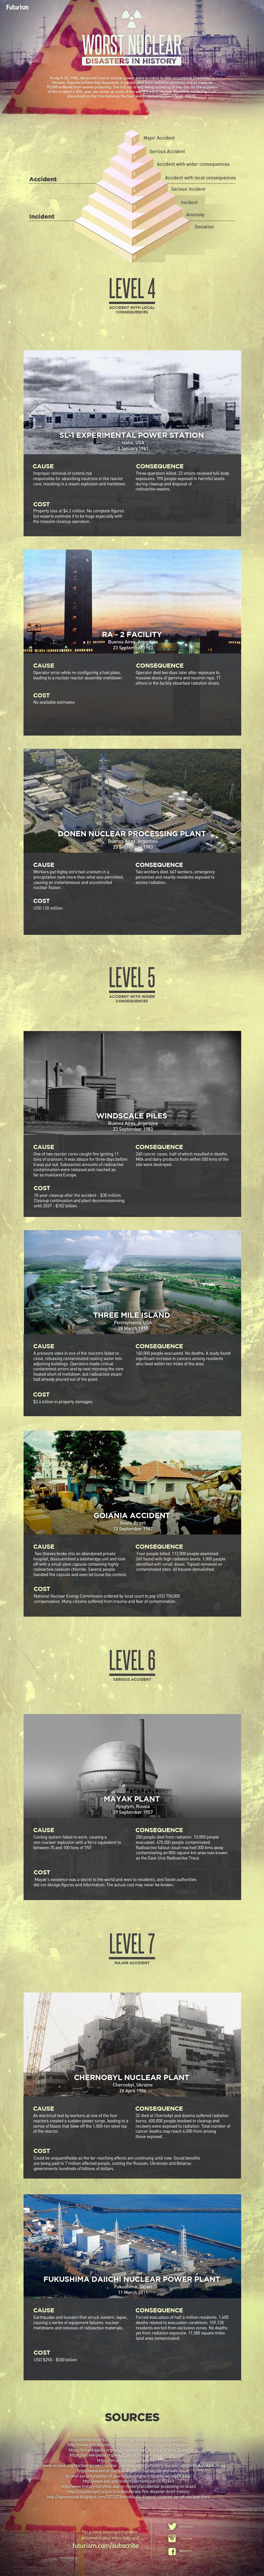 Worst Nuclear disasters infographic